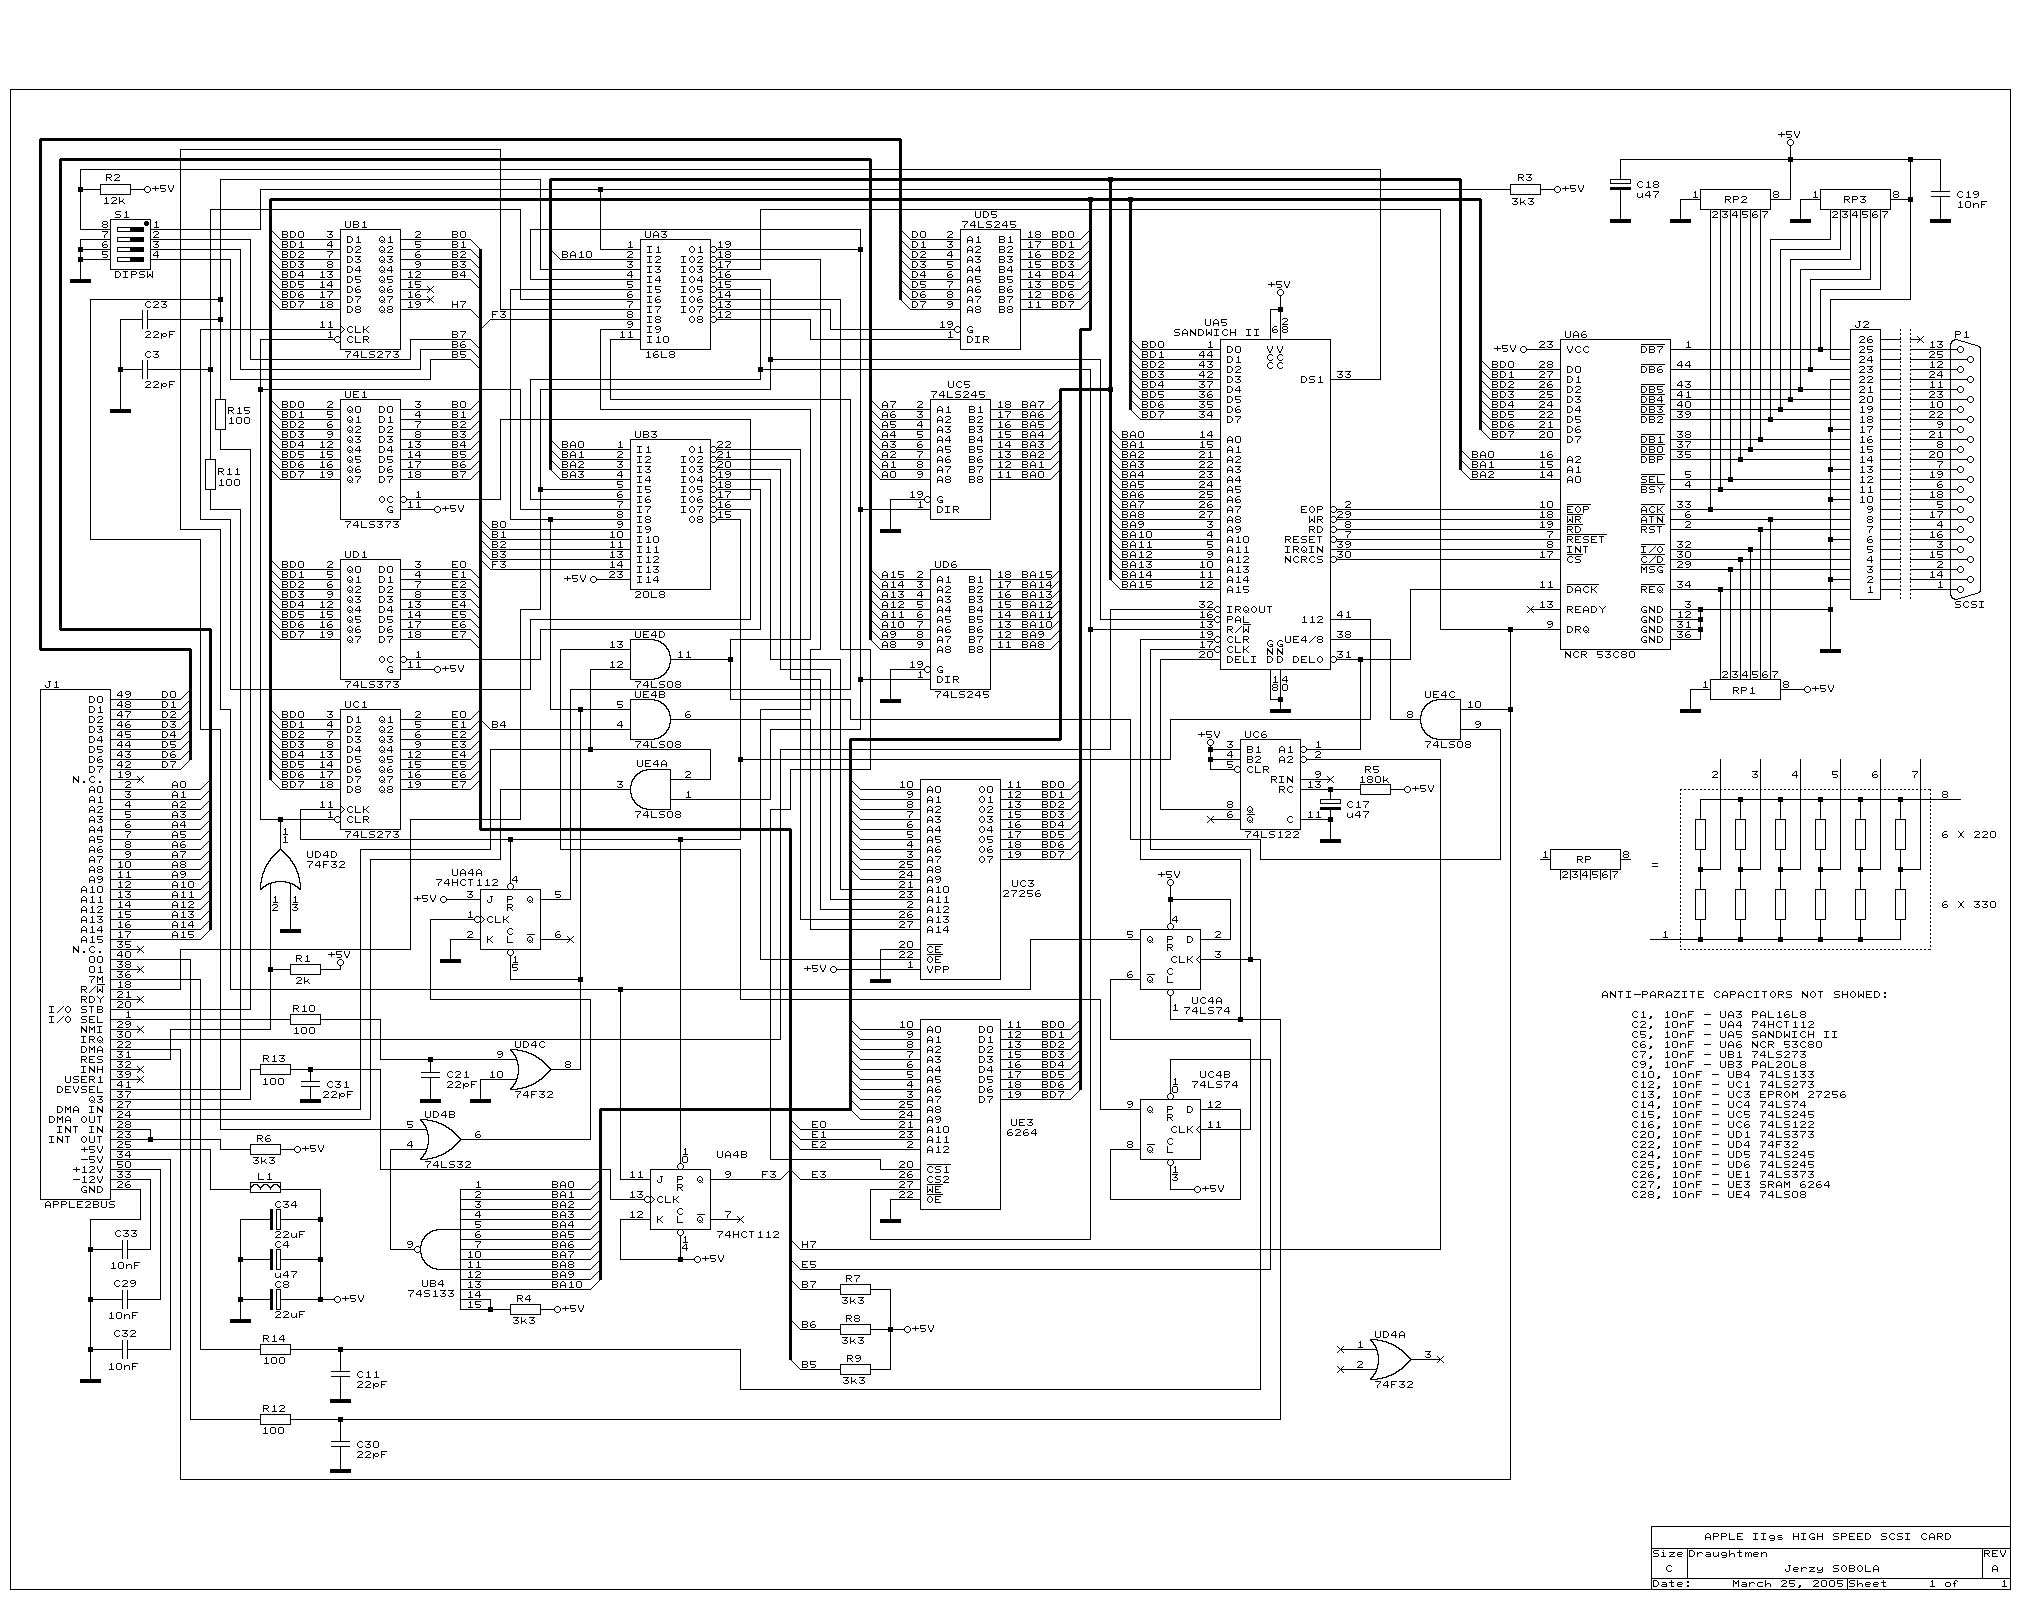 Apple 2 Circuit Diagram Schematics Wiring Diagrams Gm Radio 16169165 Apple2 Org Za Mirrors Rh Simple Electronic